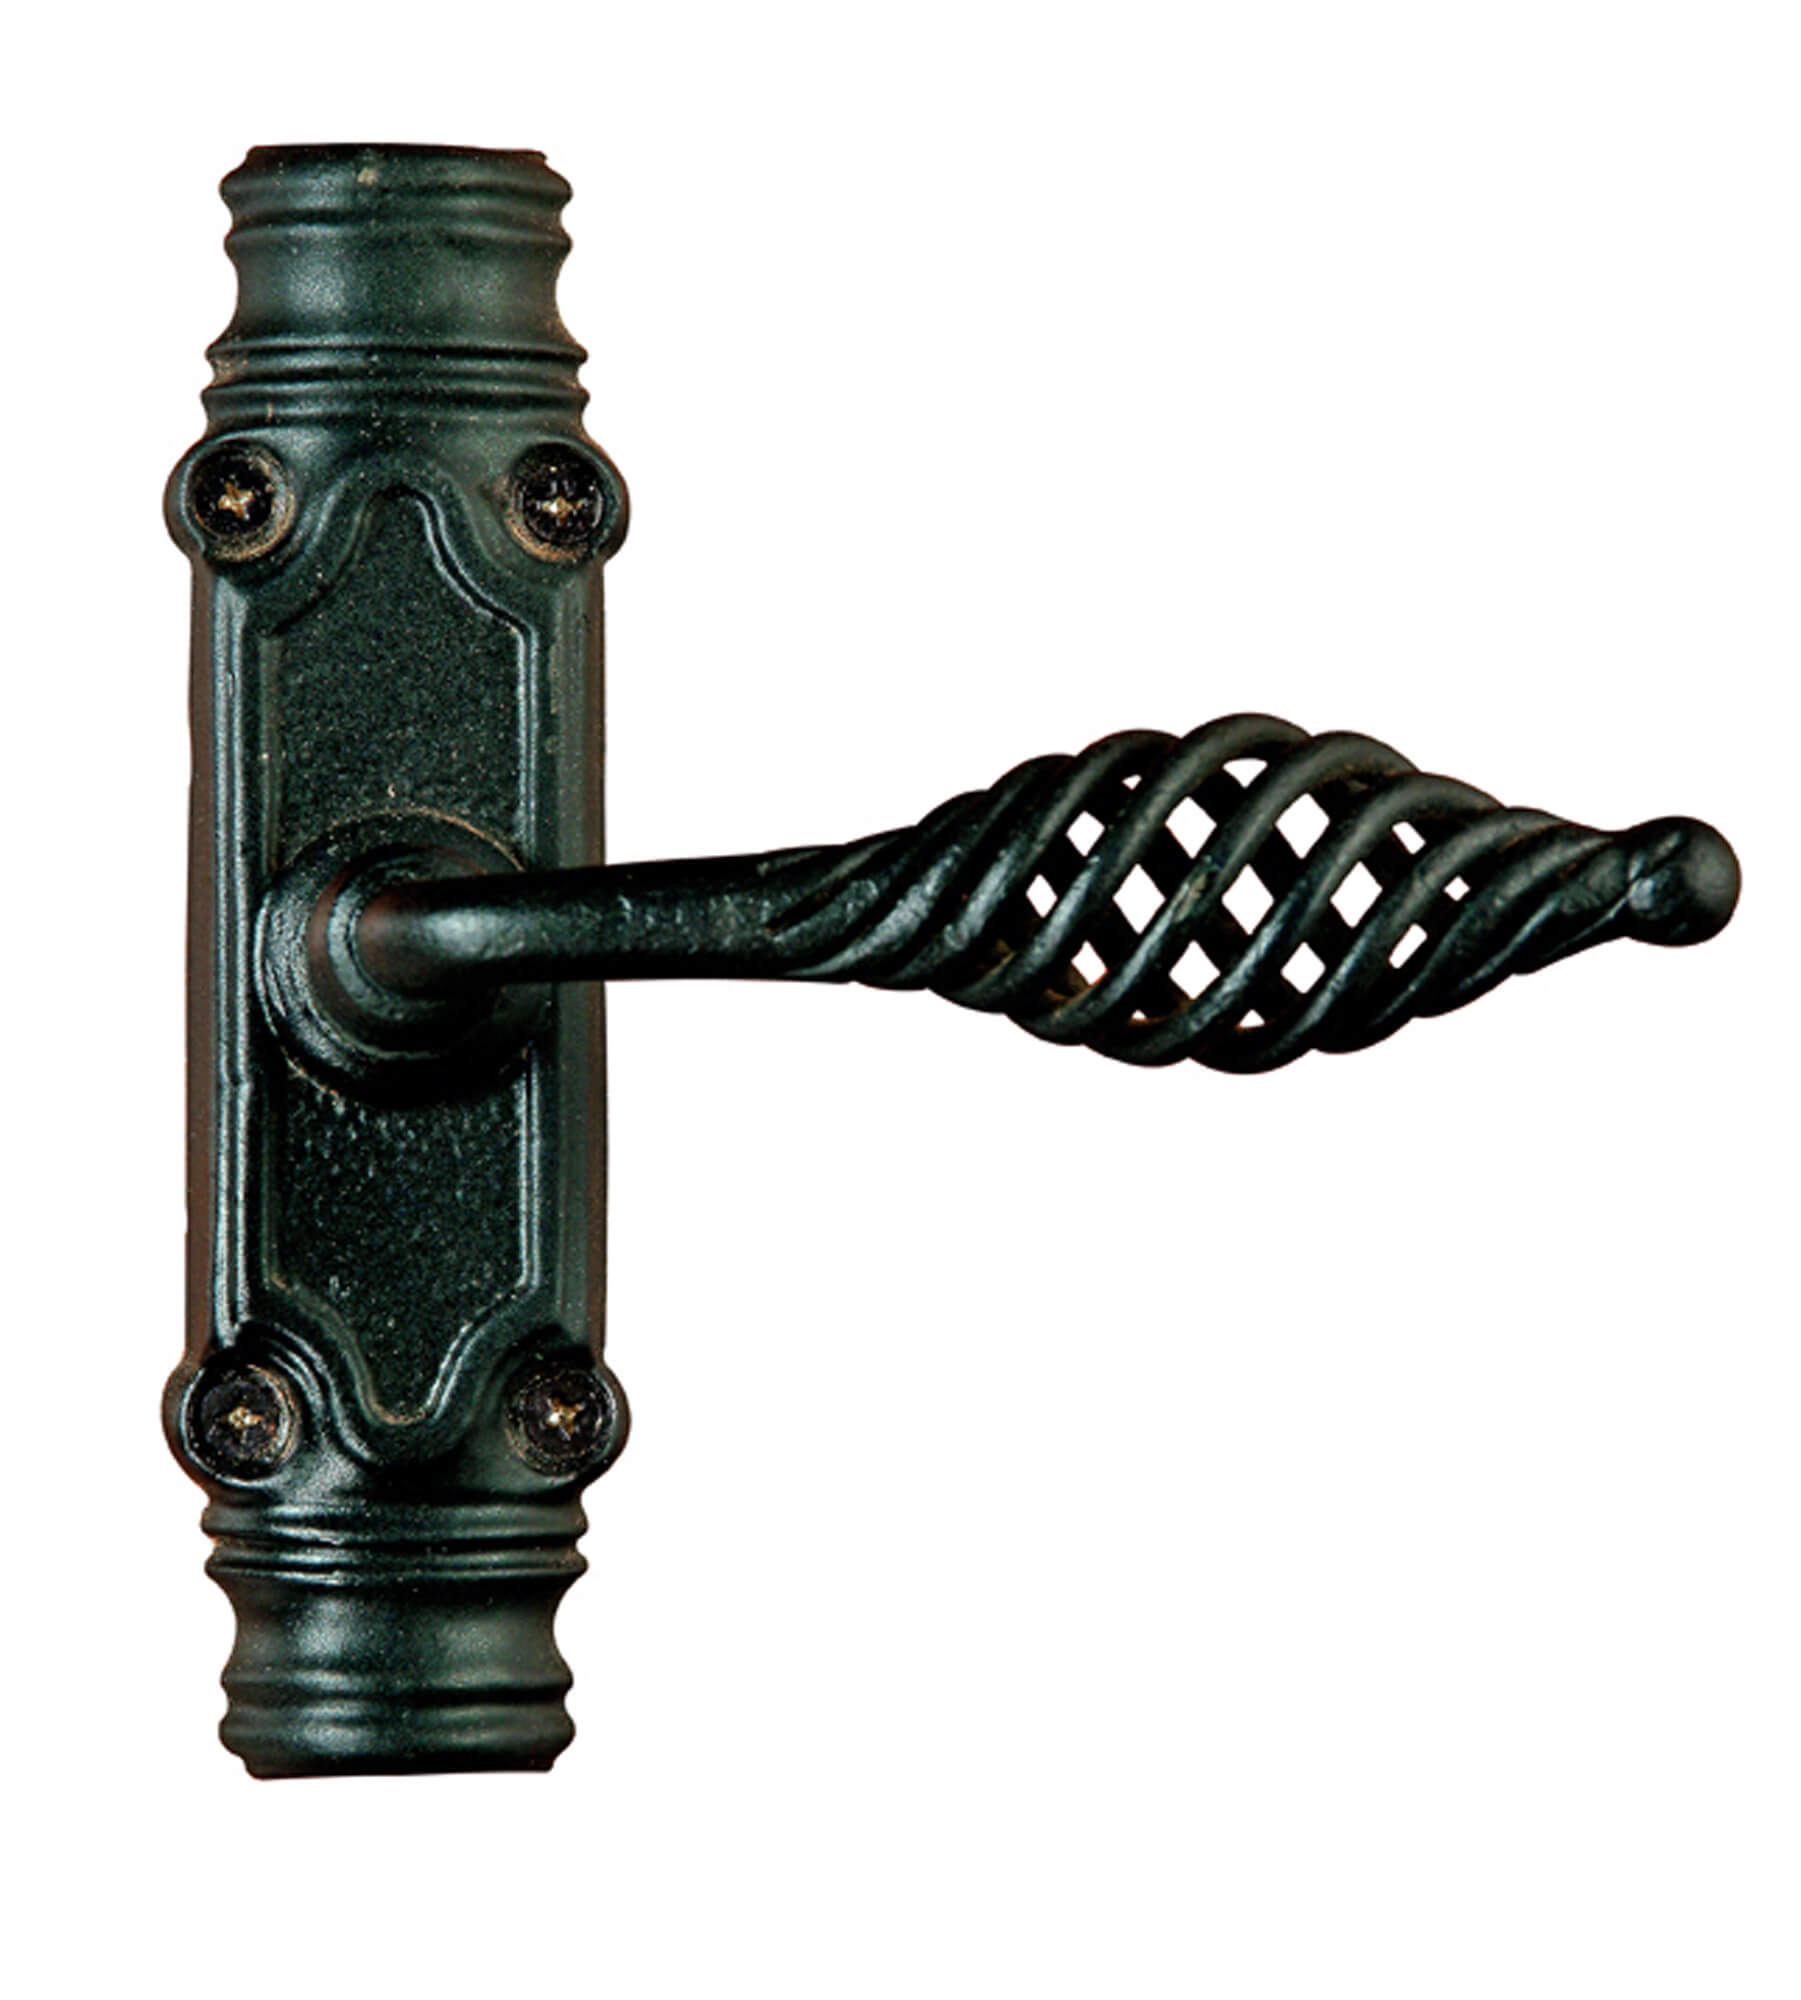 TRADITIONAL CREMONE BOLTS BIRD CAGE HANDLE